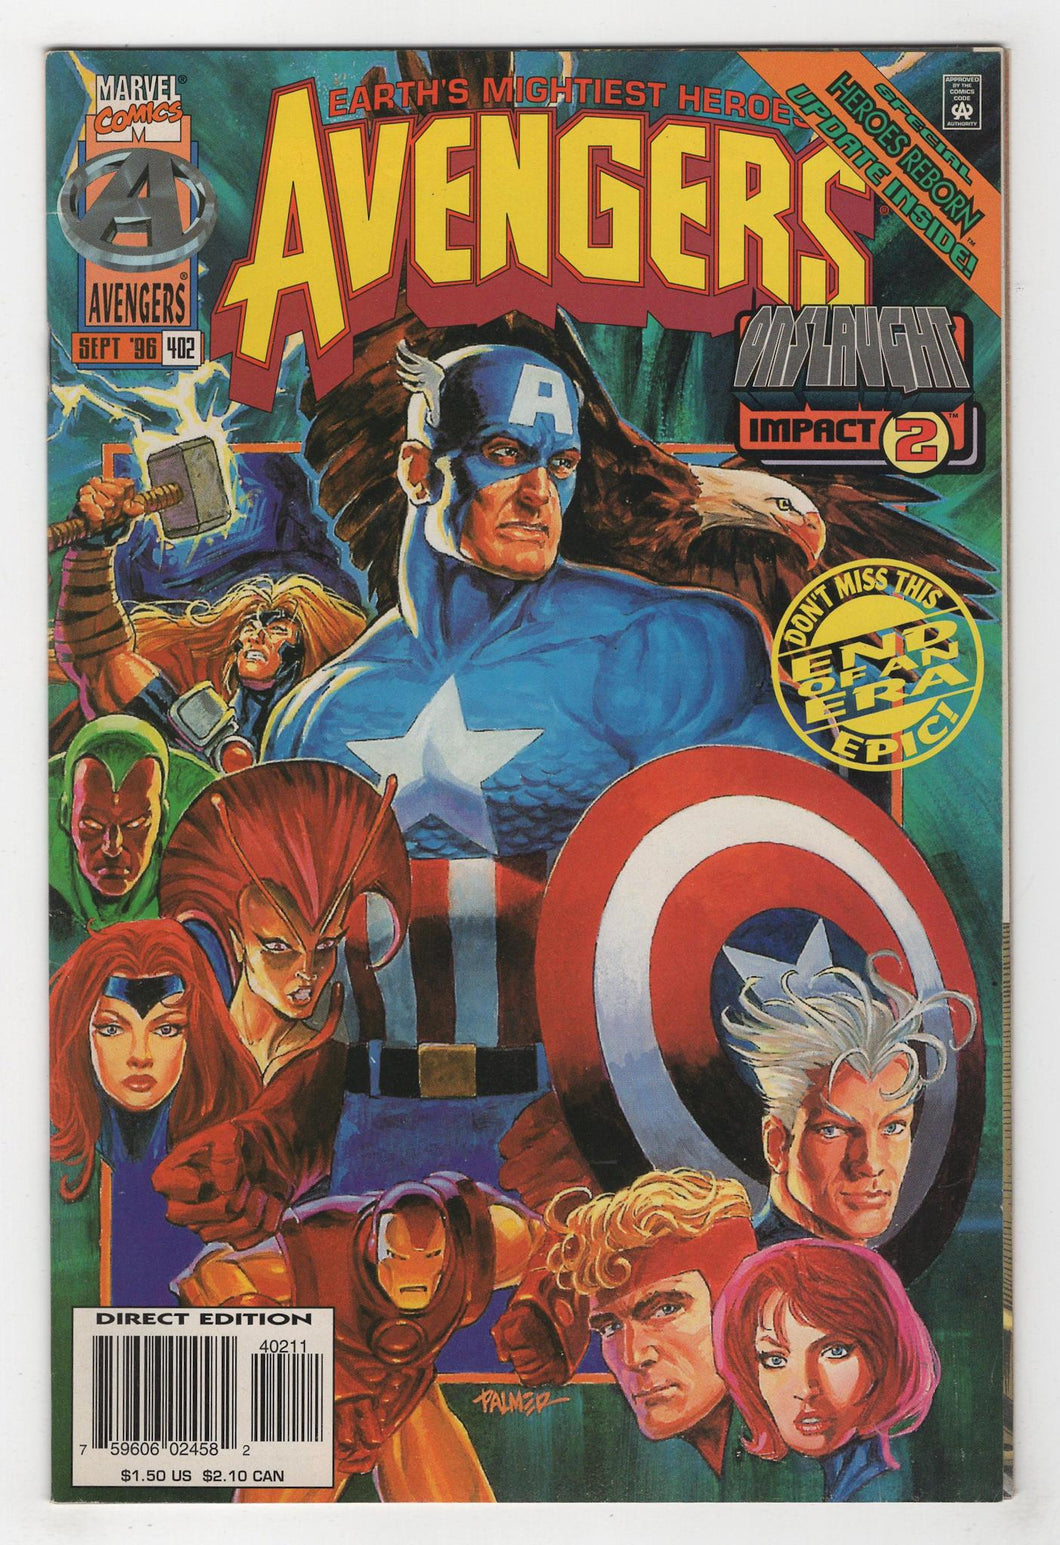 Avengers #402 Cover Front